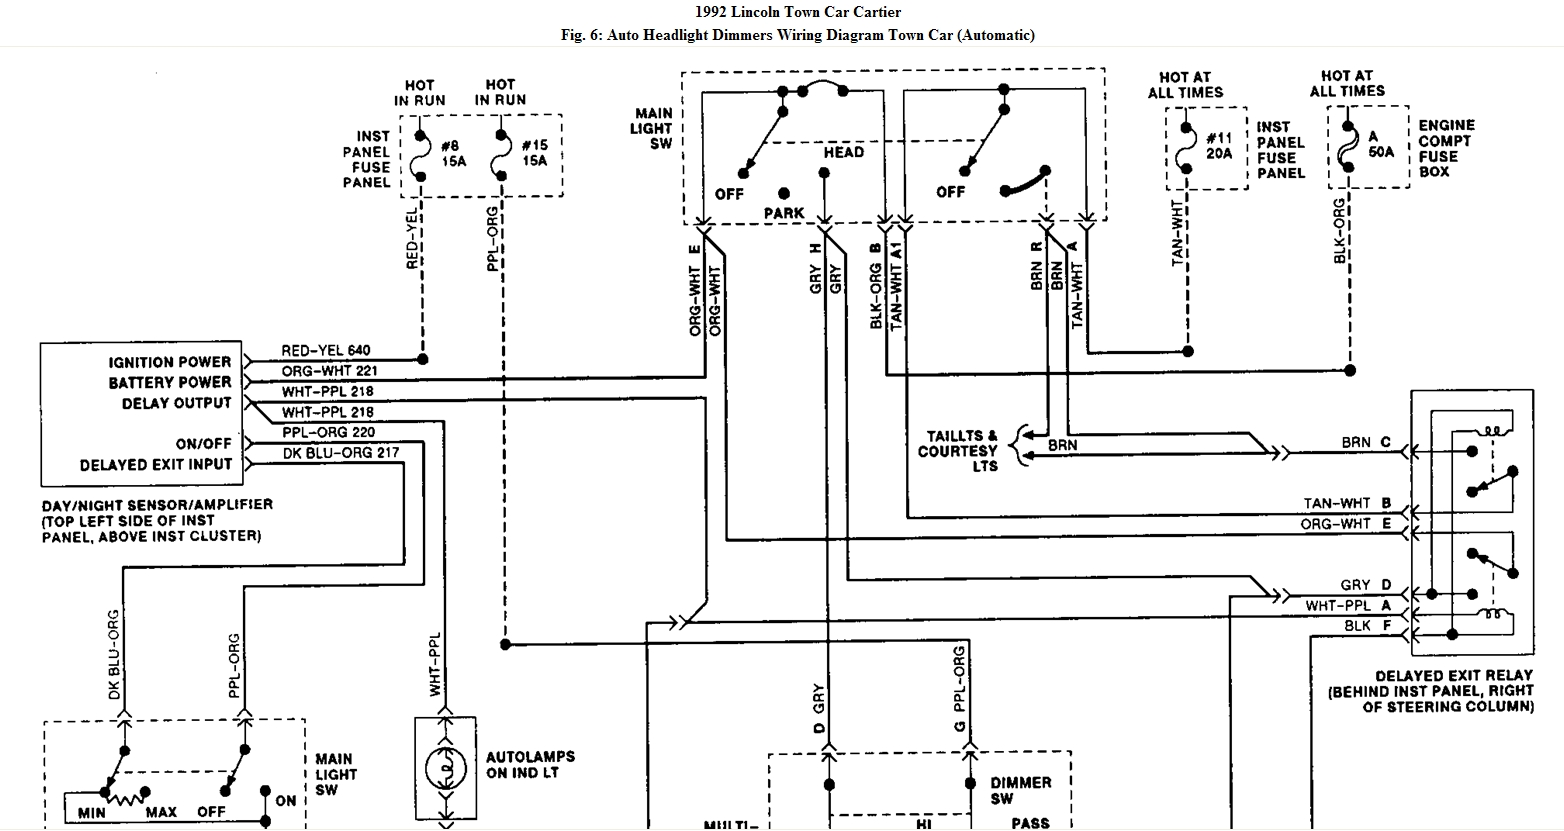 Wrg 7045 Auto Headlight Wiring Diagram